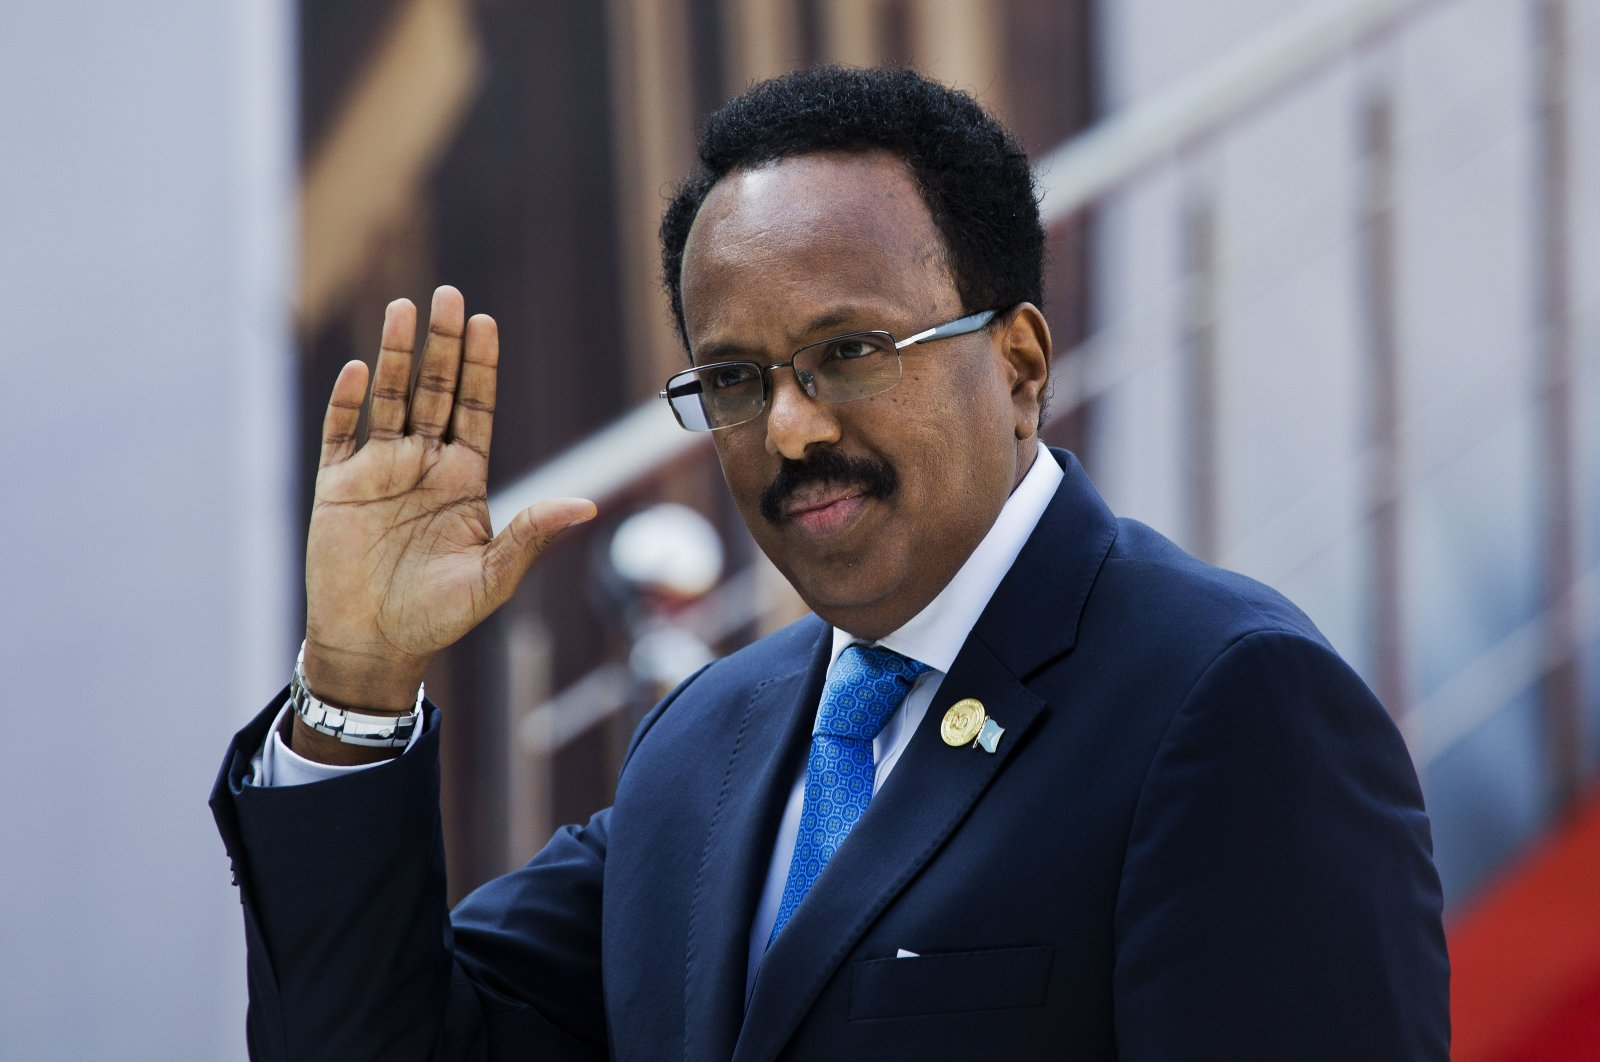 Somalia's President Mohamed Abdullahi Mohamed arrives for the swearing-in ceremony of Cyril Ramaphosa at Loftus Versfeld stadium in Pretoria, South Africa, May 25, 2019. (AP Photo)